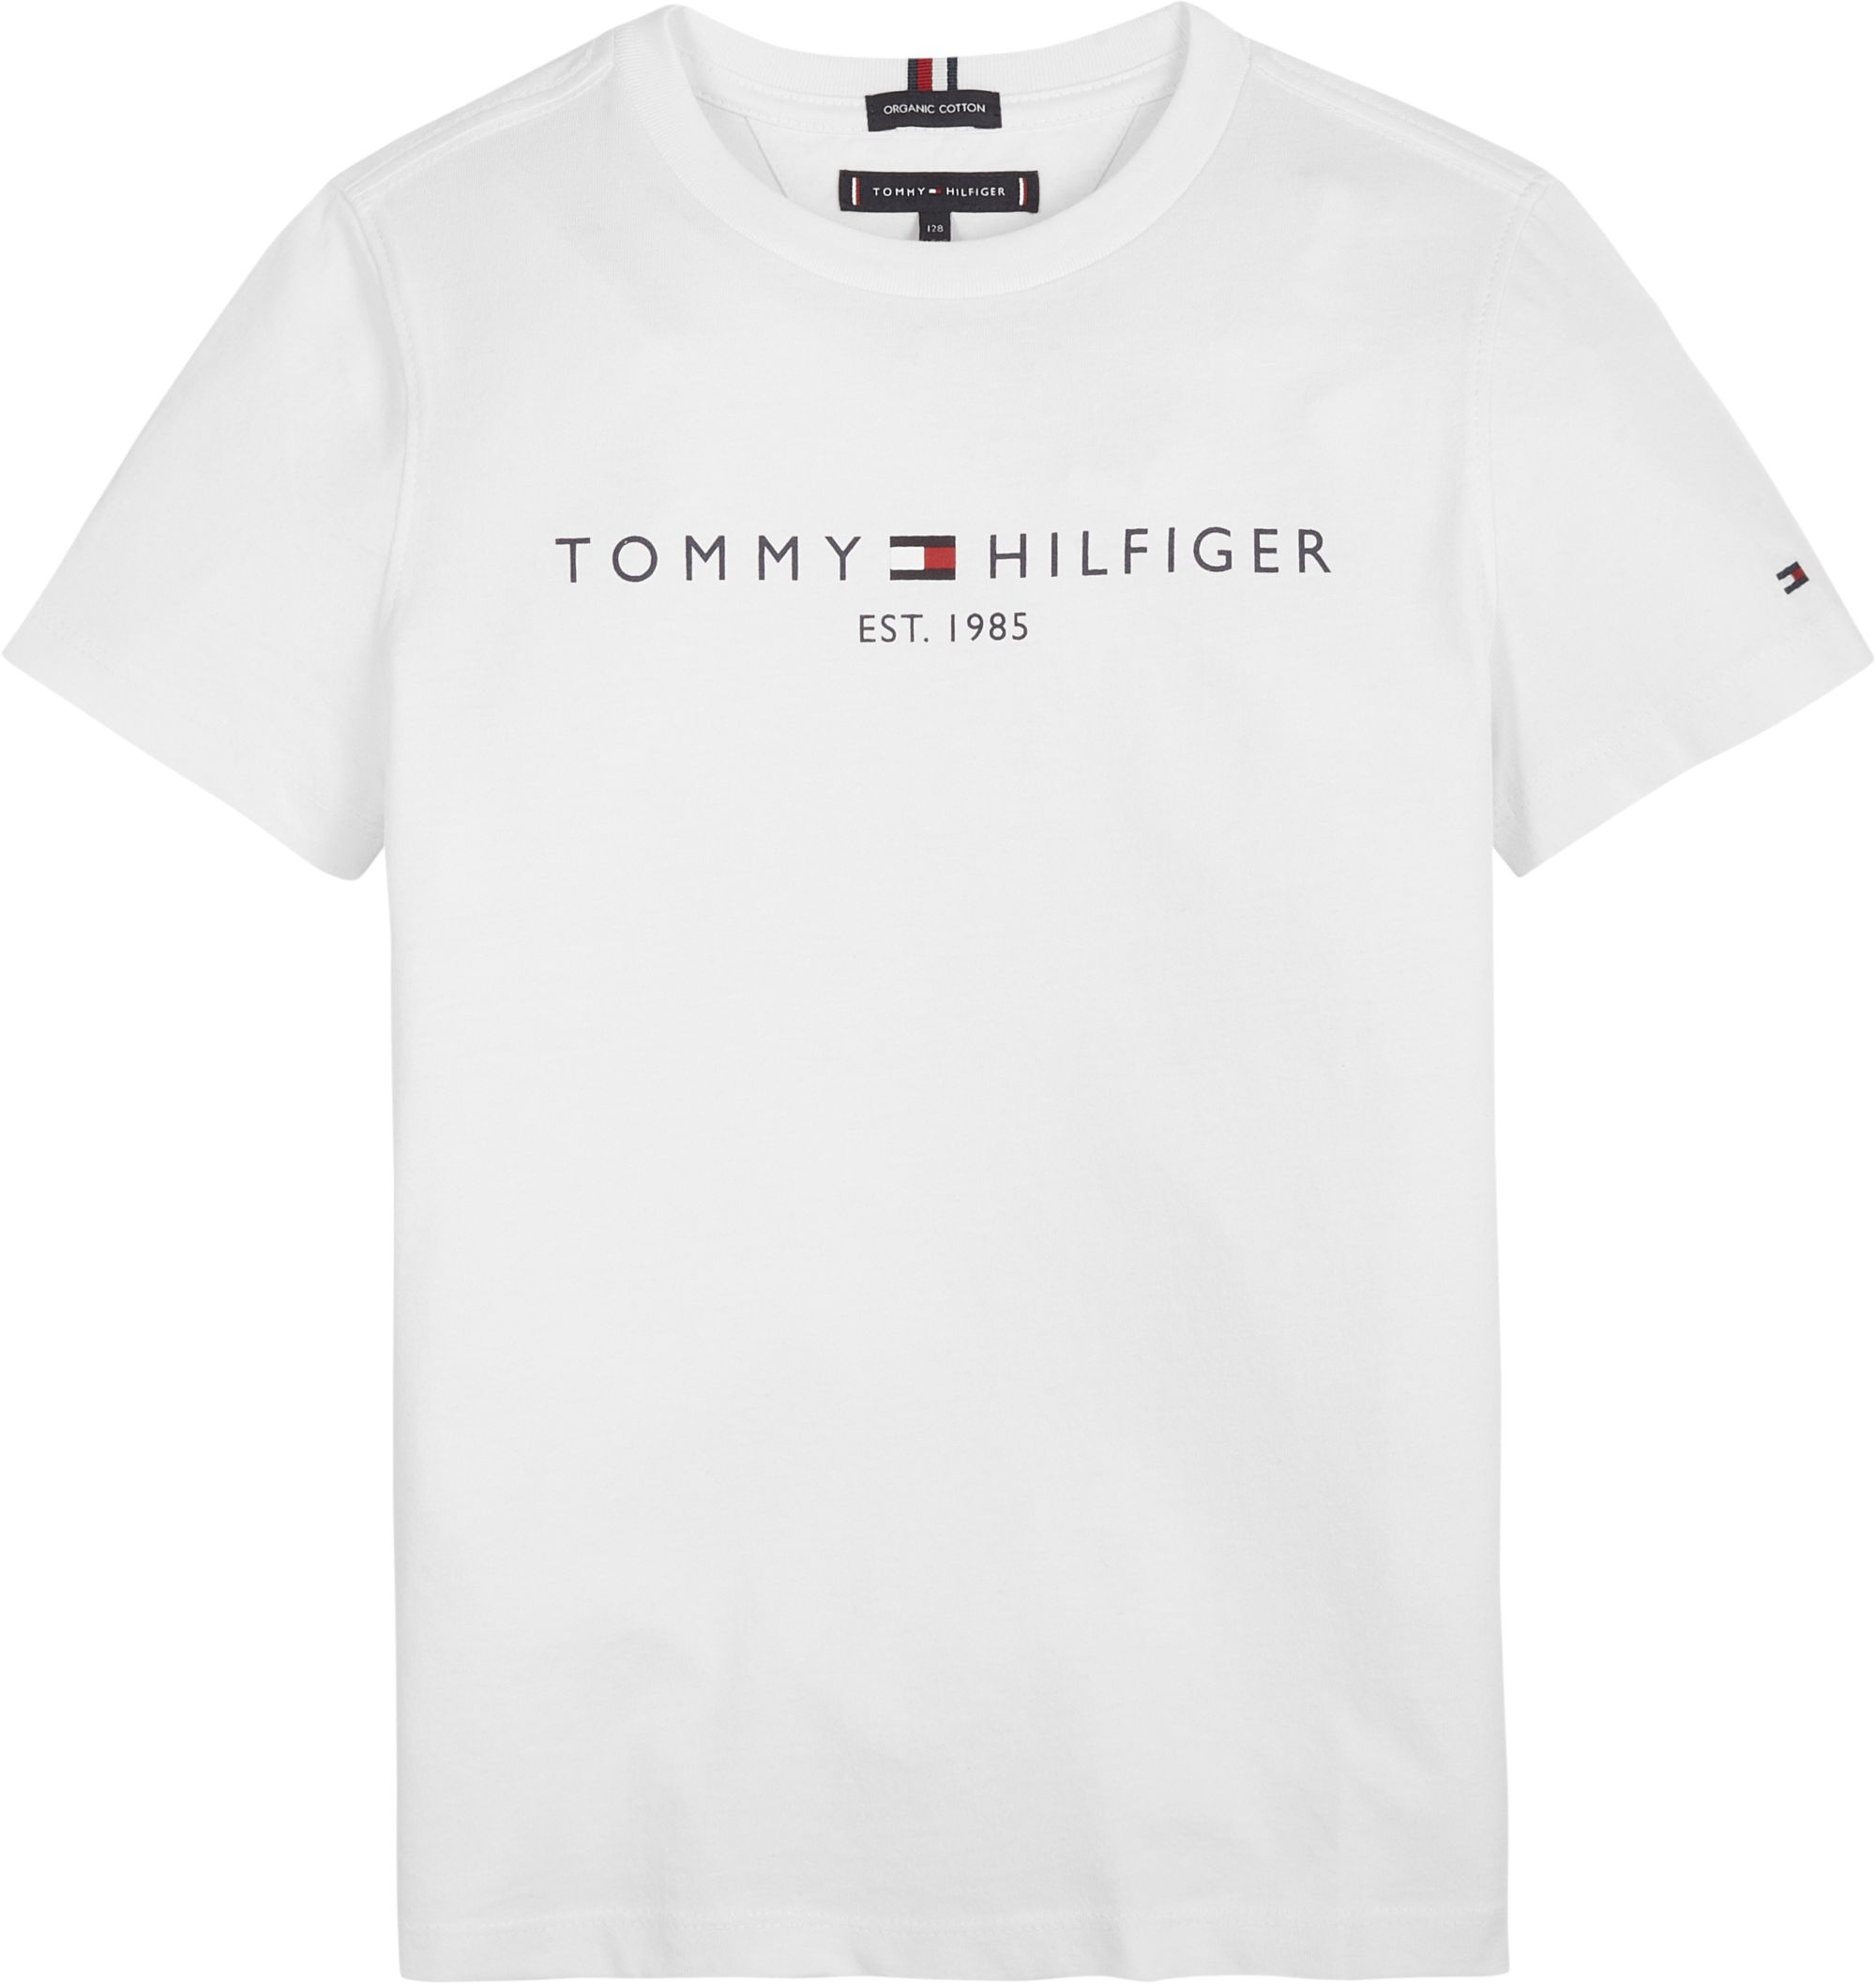 Essential Kids Tee in White